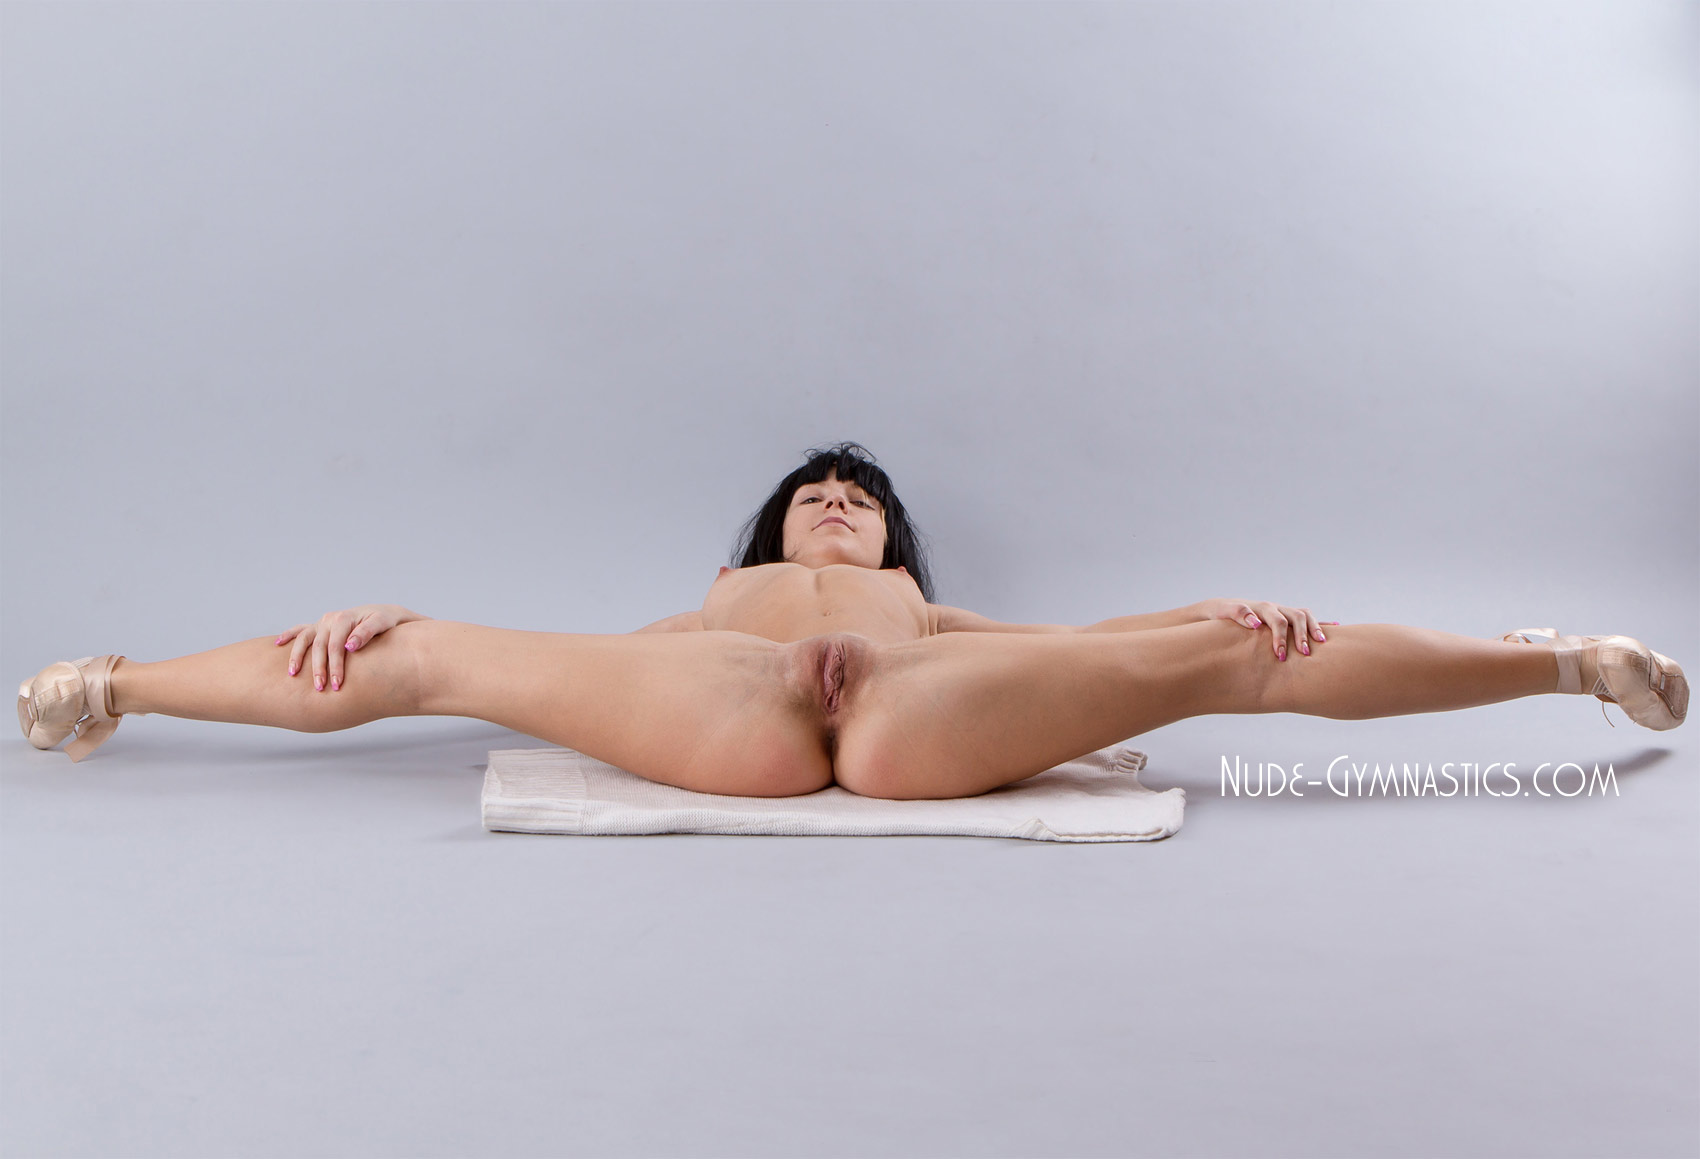 gymnast Flexible nude